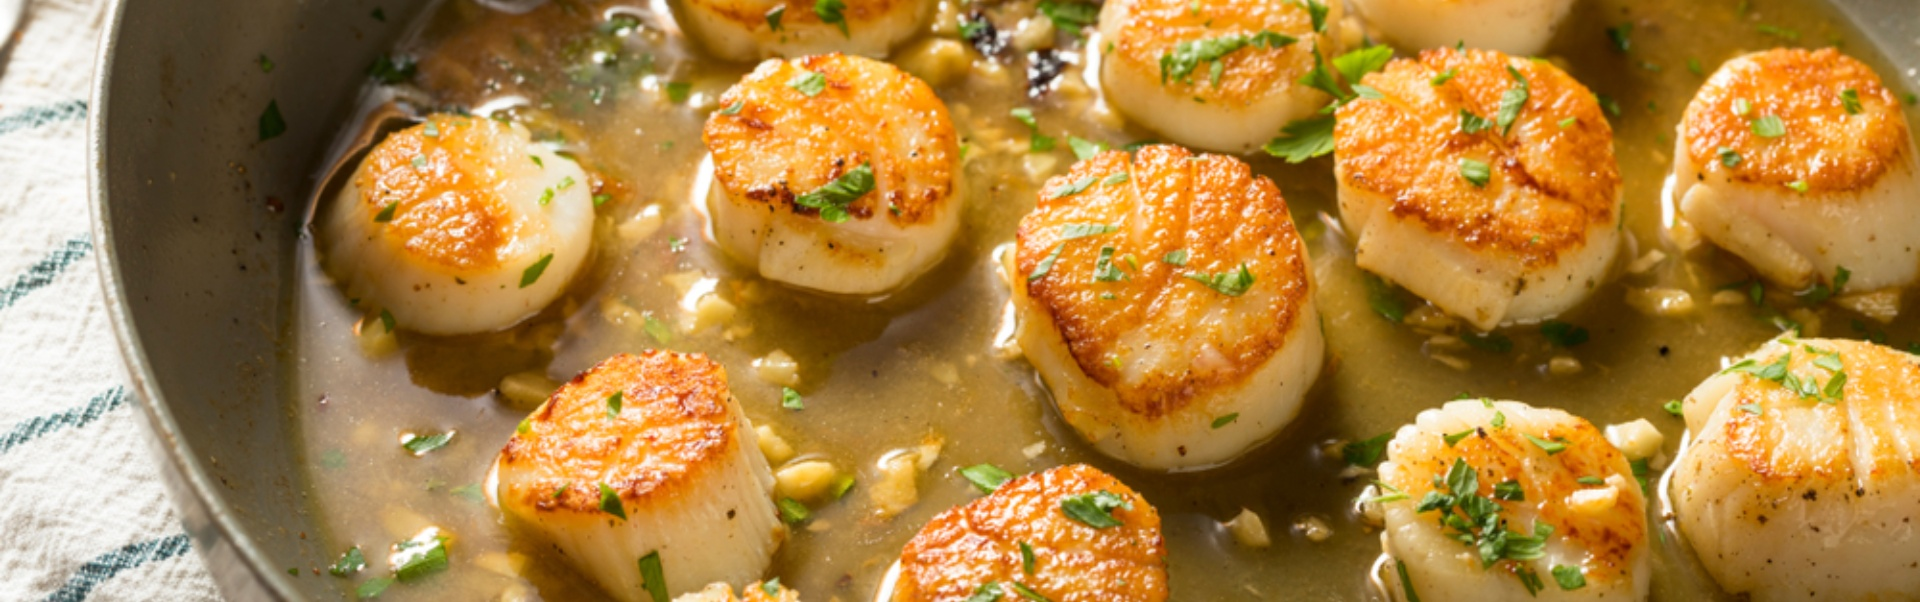 Delicious Scottish Scallops sizziling in butter